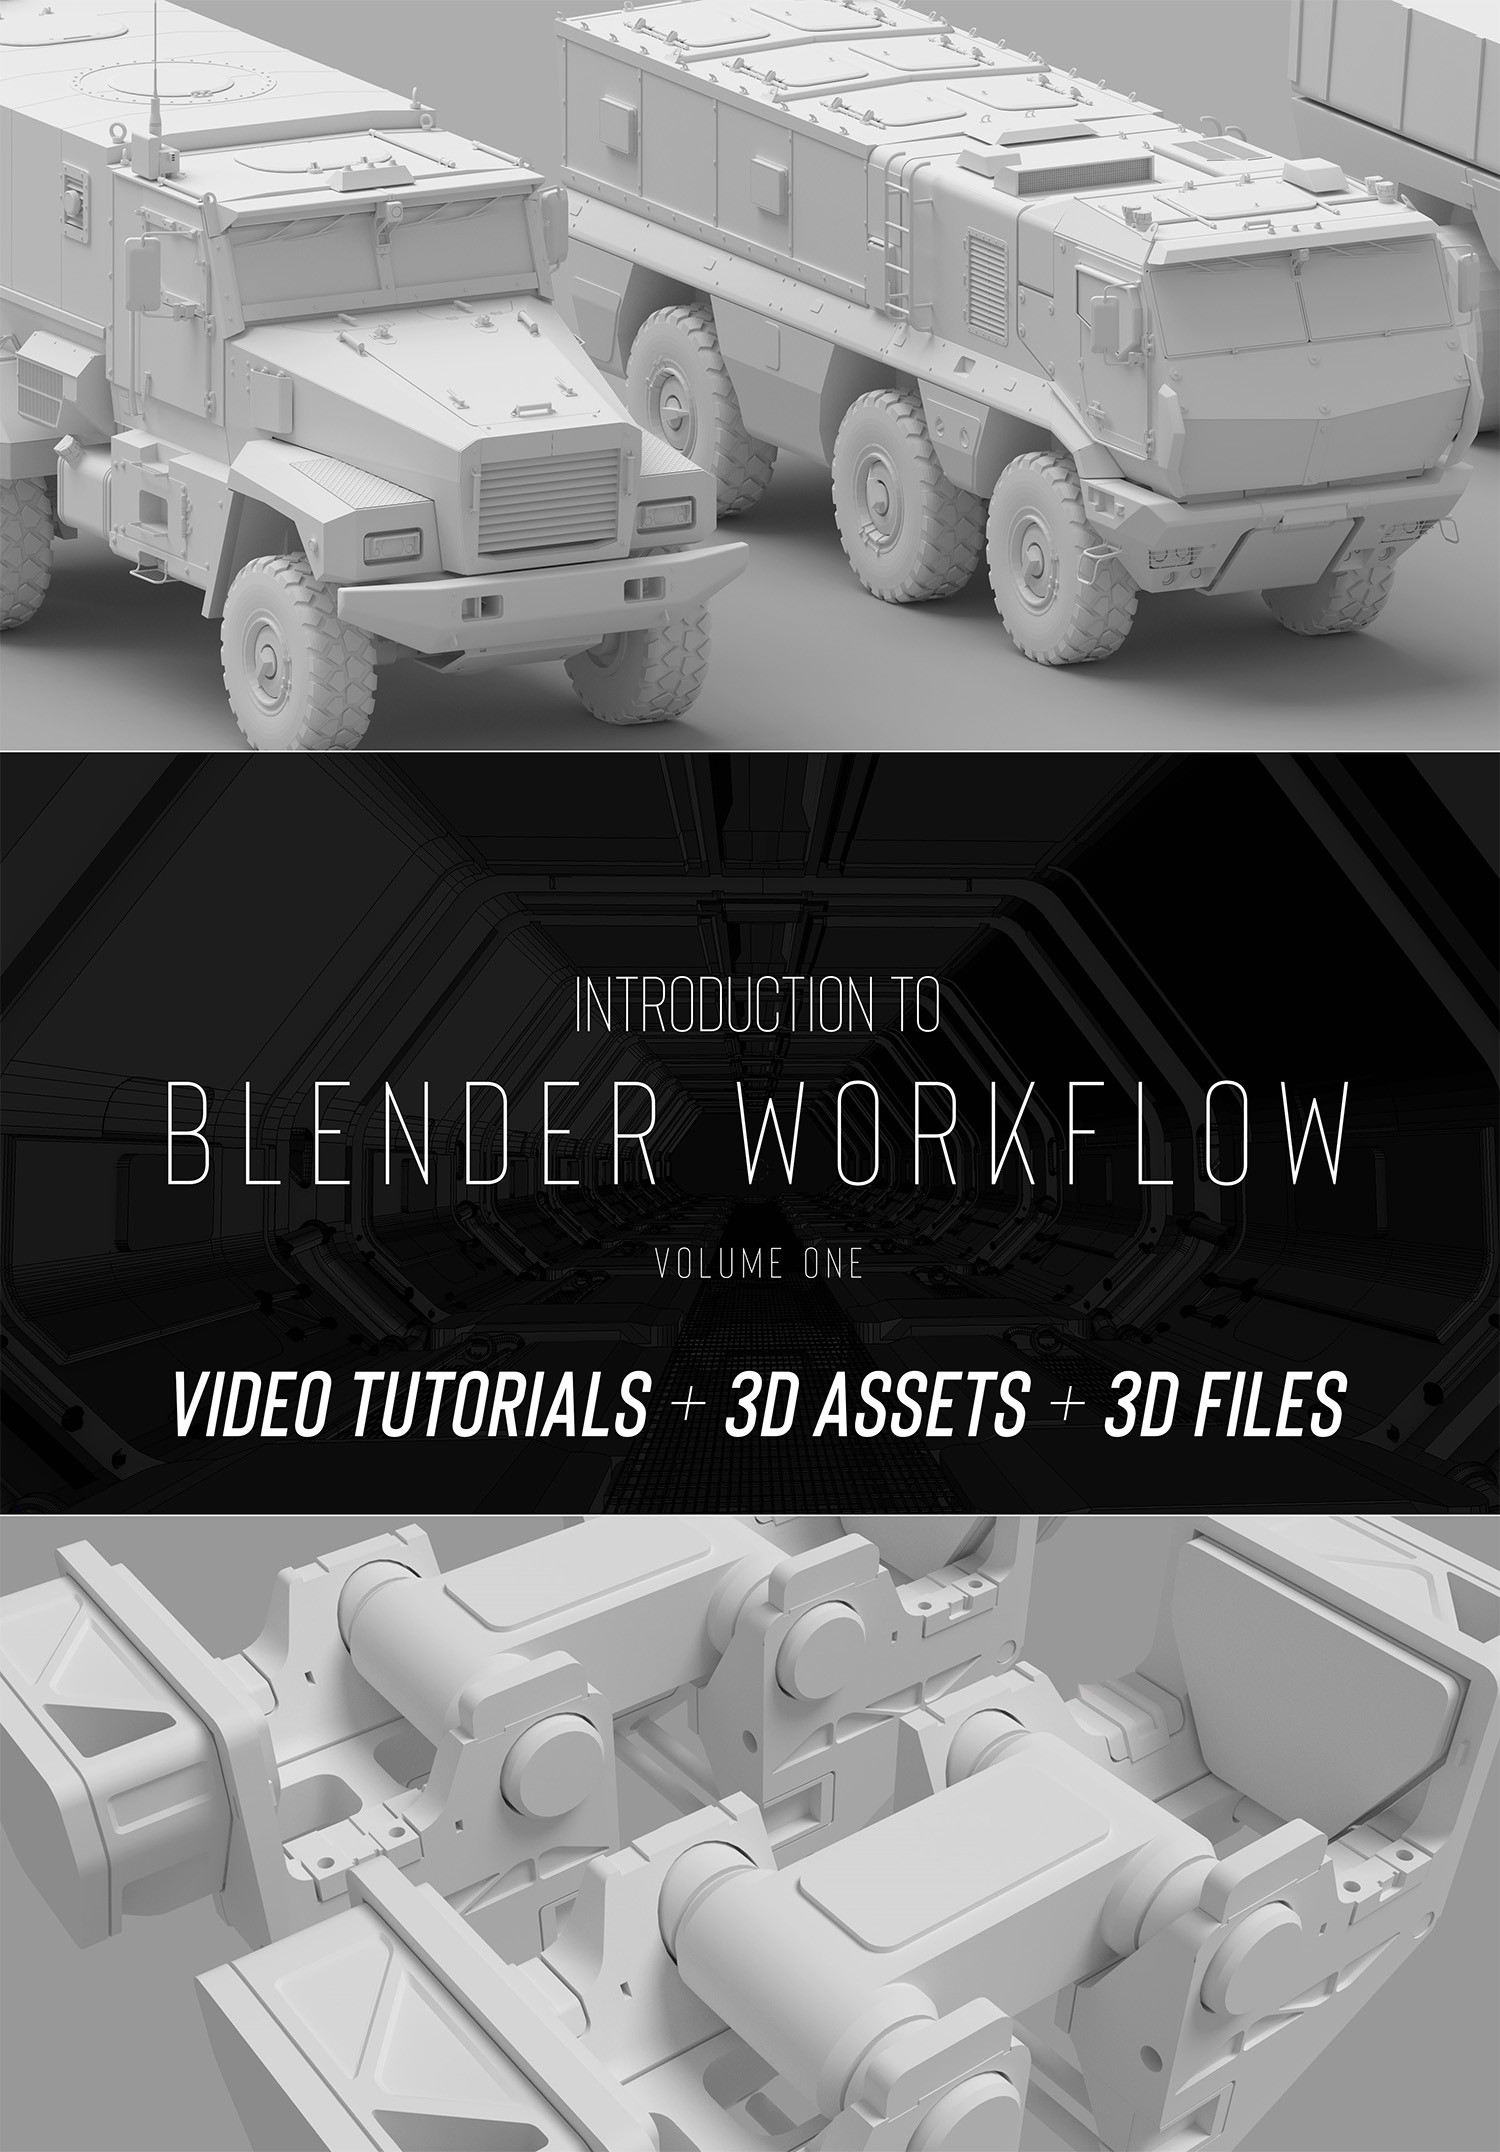 ArtStation - Introduction to Blender workflow (Volume One